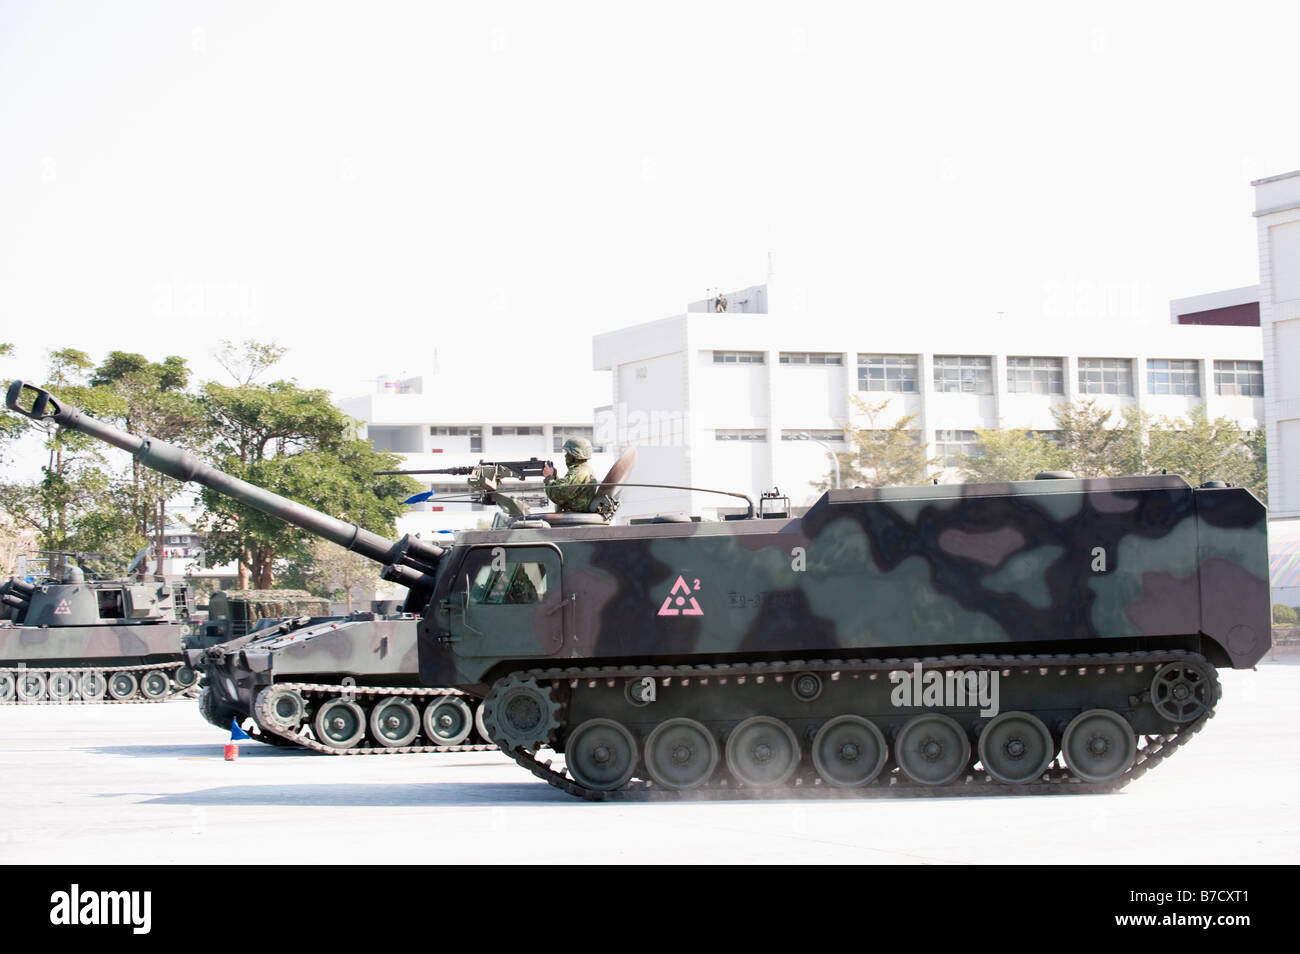 CM-24 Armored Carrier During War Games At The 58th Artillery Command, Taichung, Taiwan - Stock Image